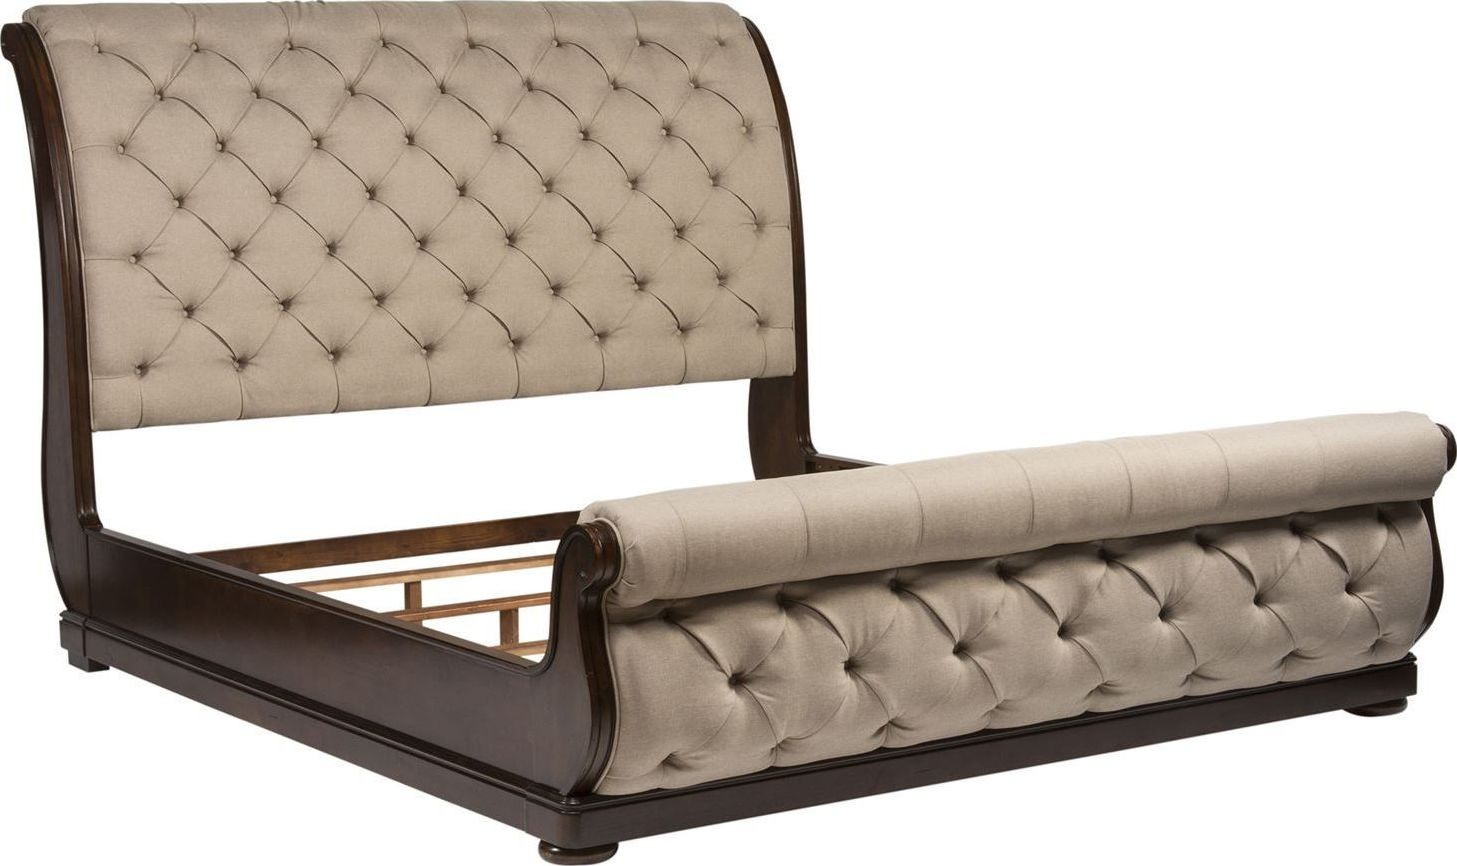 Sofa Parade Santa Rosa Cotswold Queen Upholstered Sleigh Bed